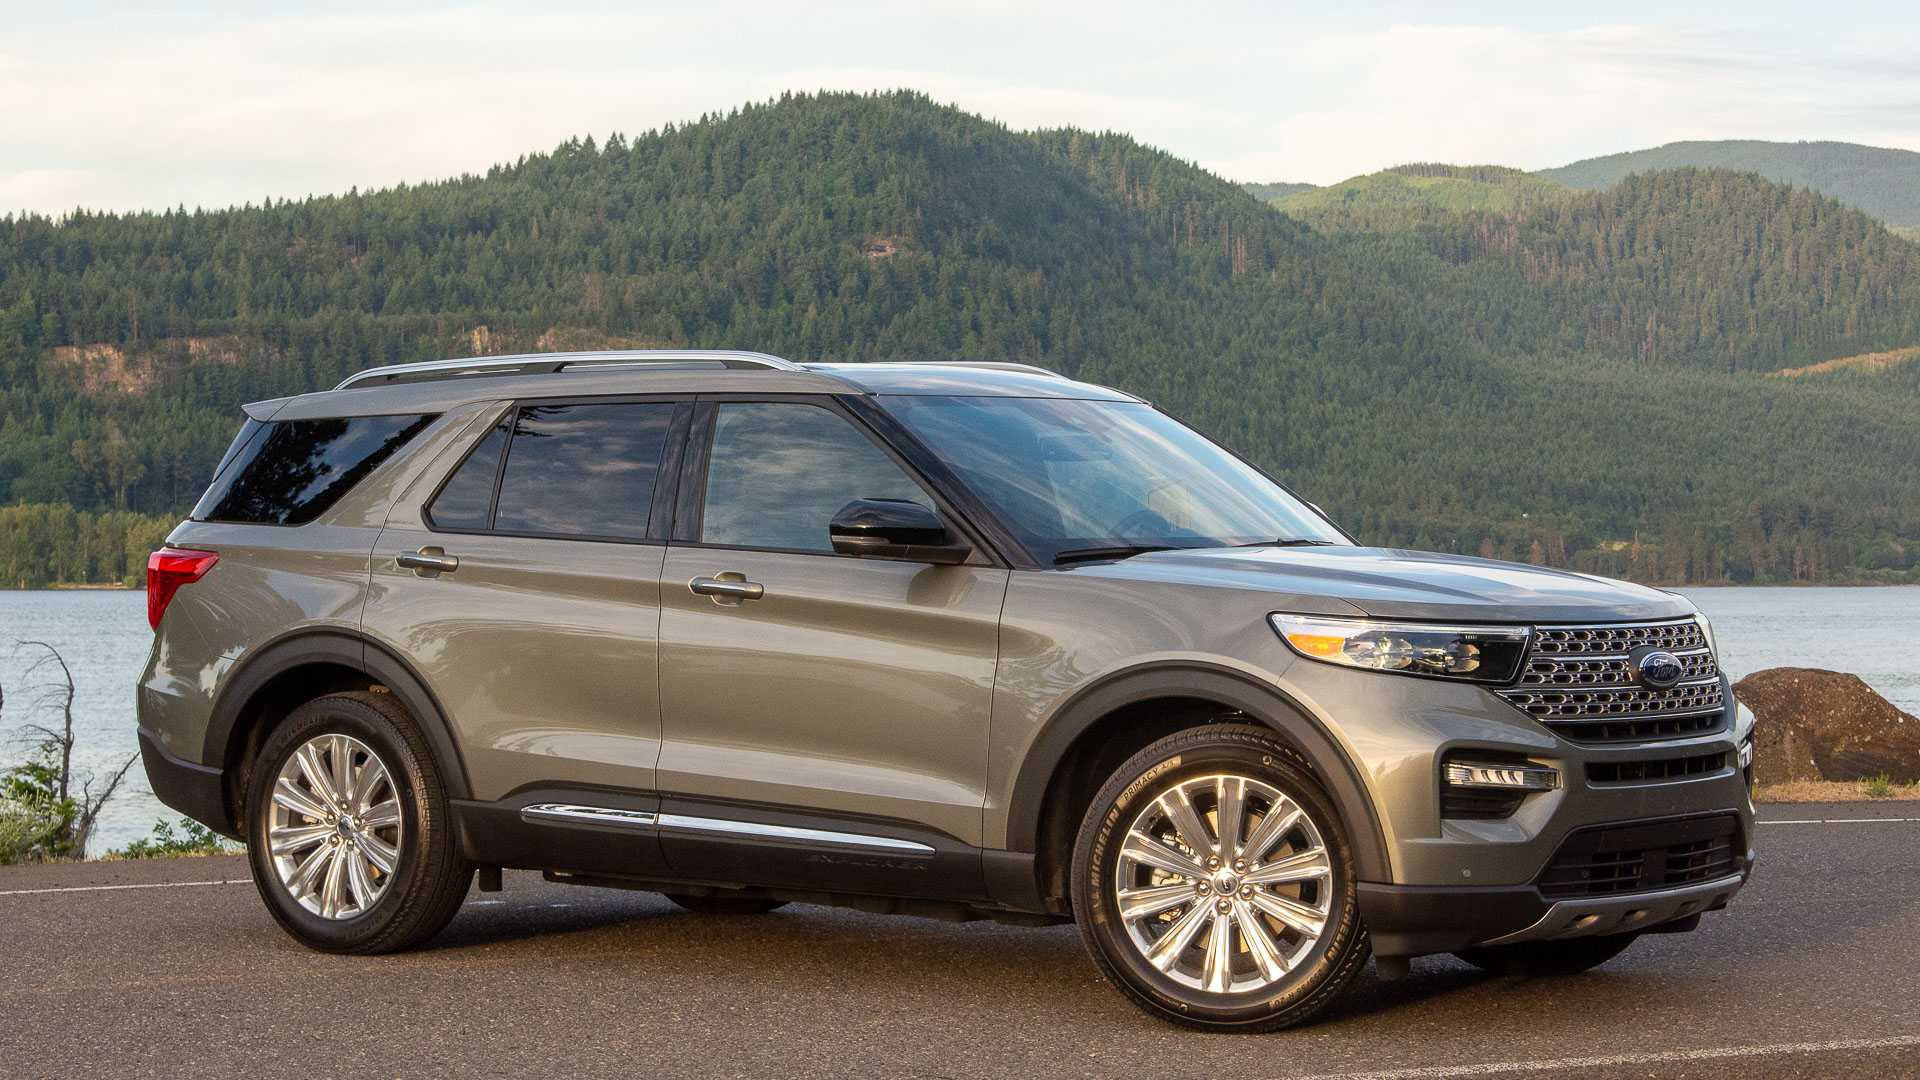 23 All New 2020 Ford Explorer Availability Spesification